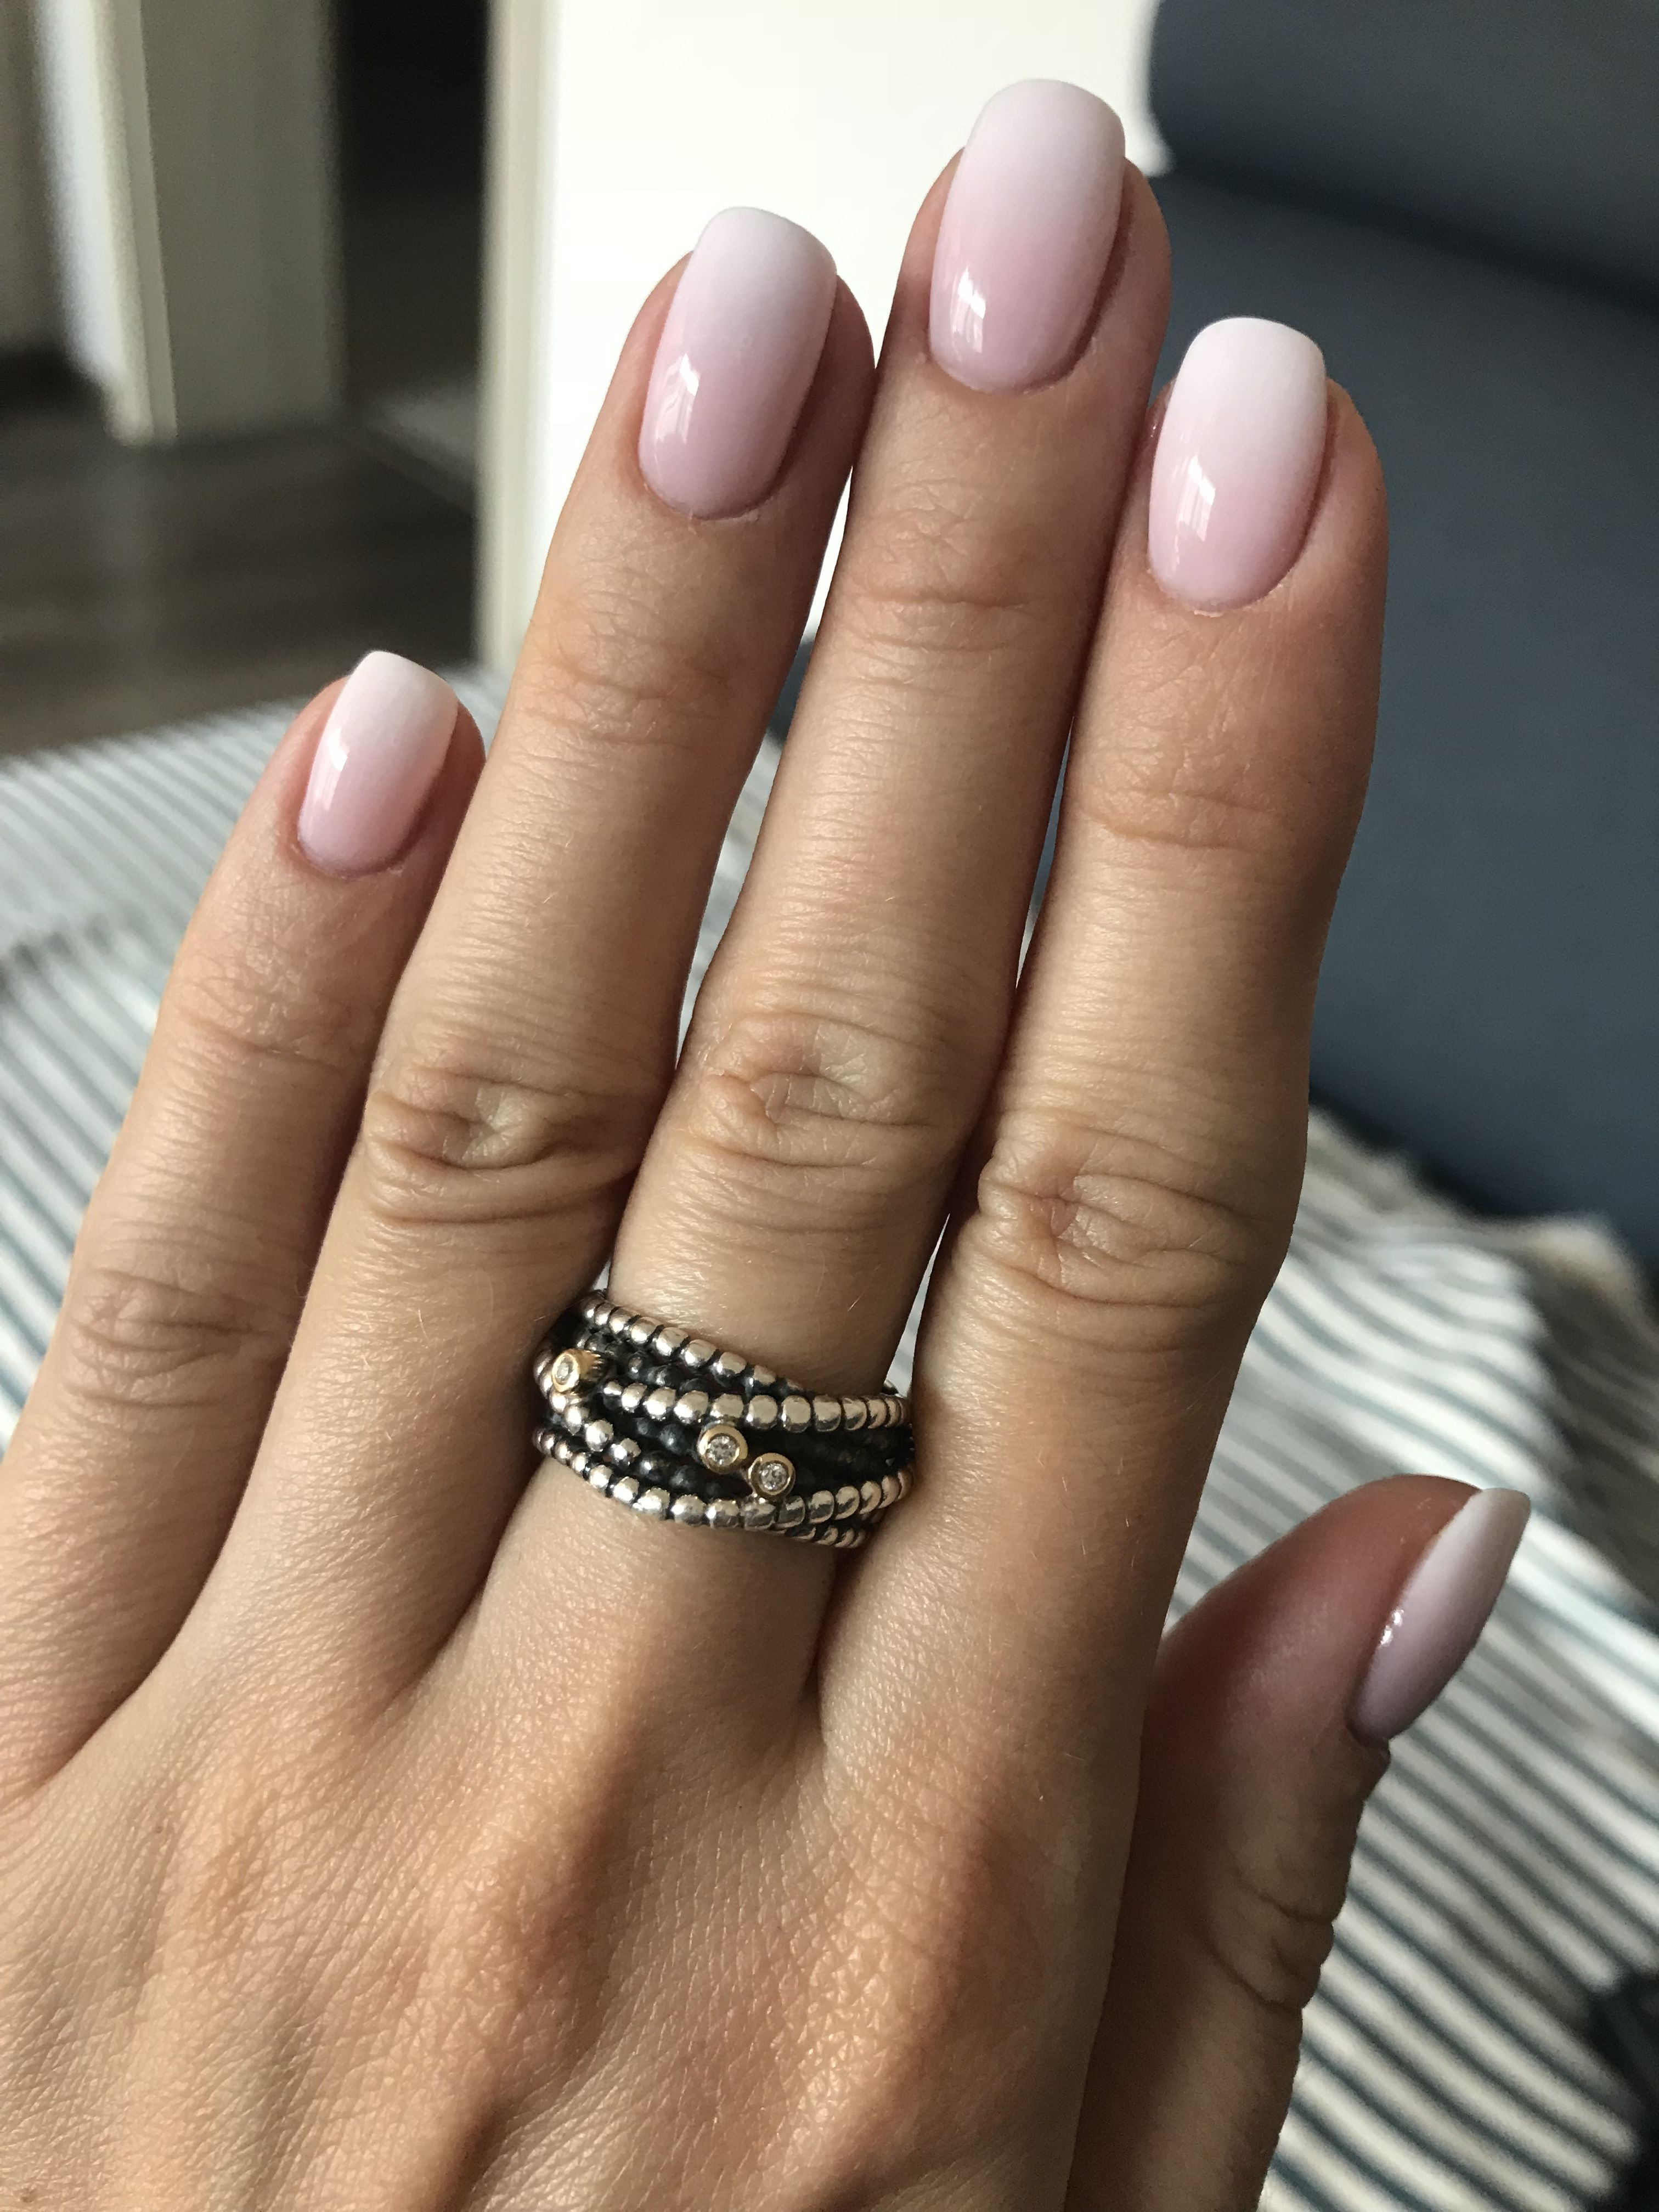 Babyboomer Nails Pandora Paznokcie W 2019 Nails Nail Art I Nail